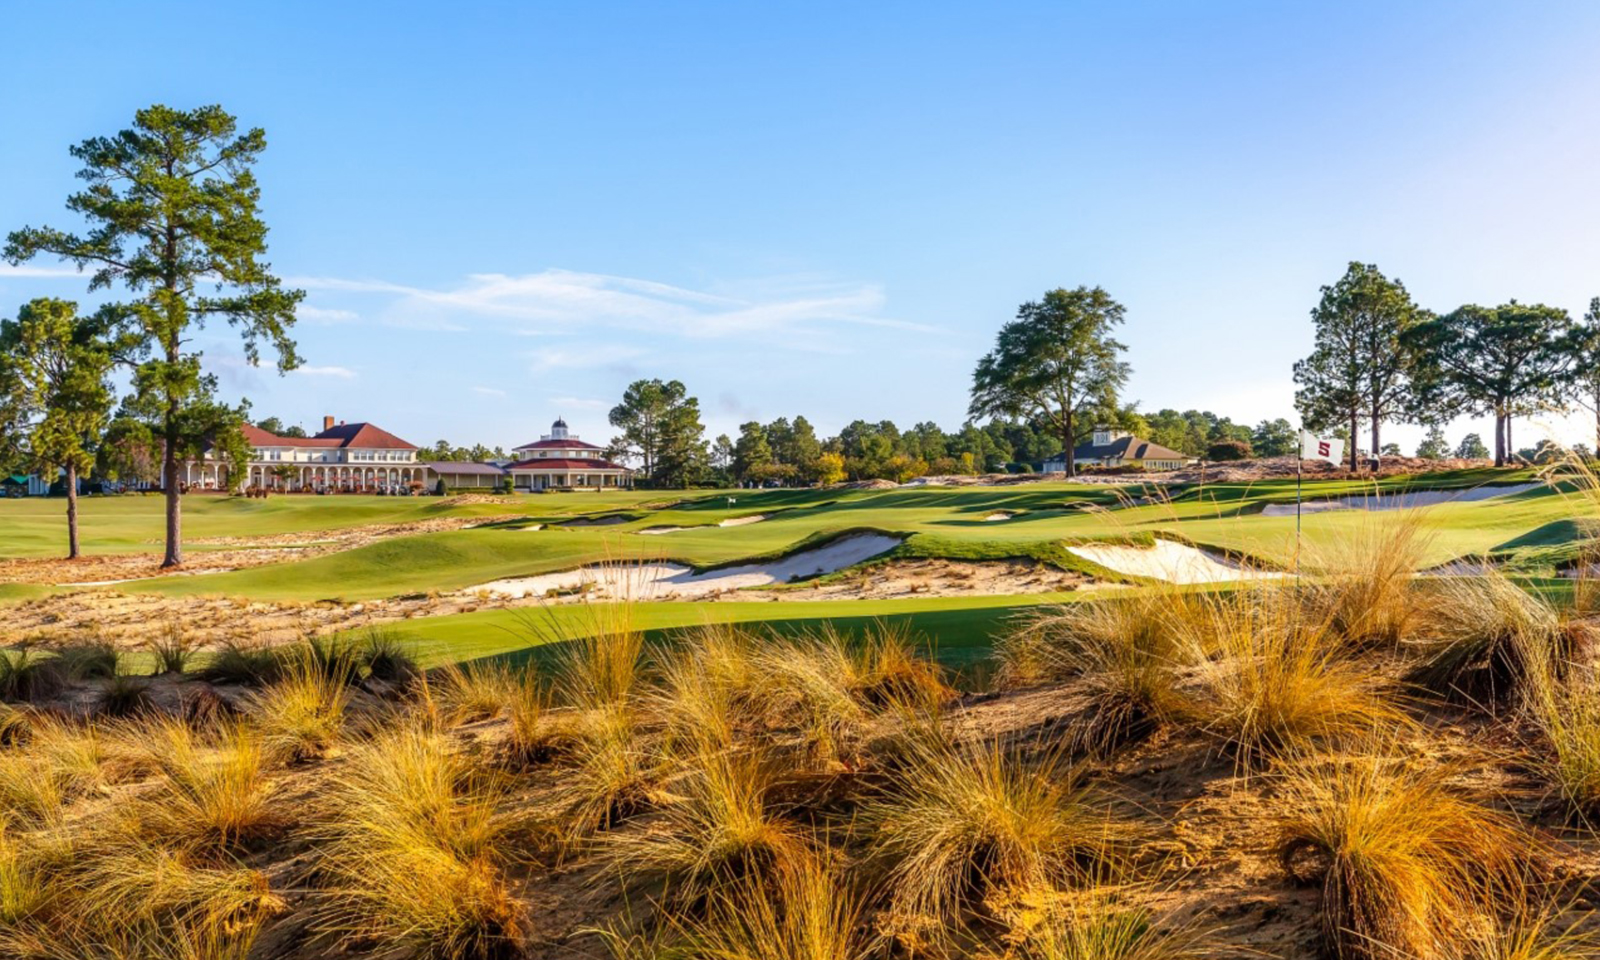 "Over 120 years after golf arrived at Pinehurst, the historic resort, often referred to as the Cradle of American Golf, will open ""The Cradle"", a nine-hole course by golf architect Gil Hanse."